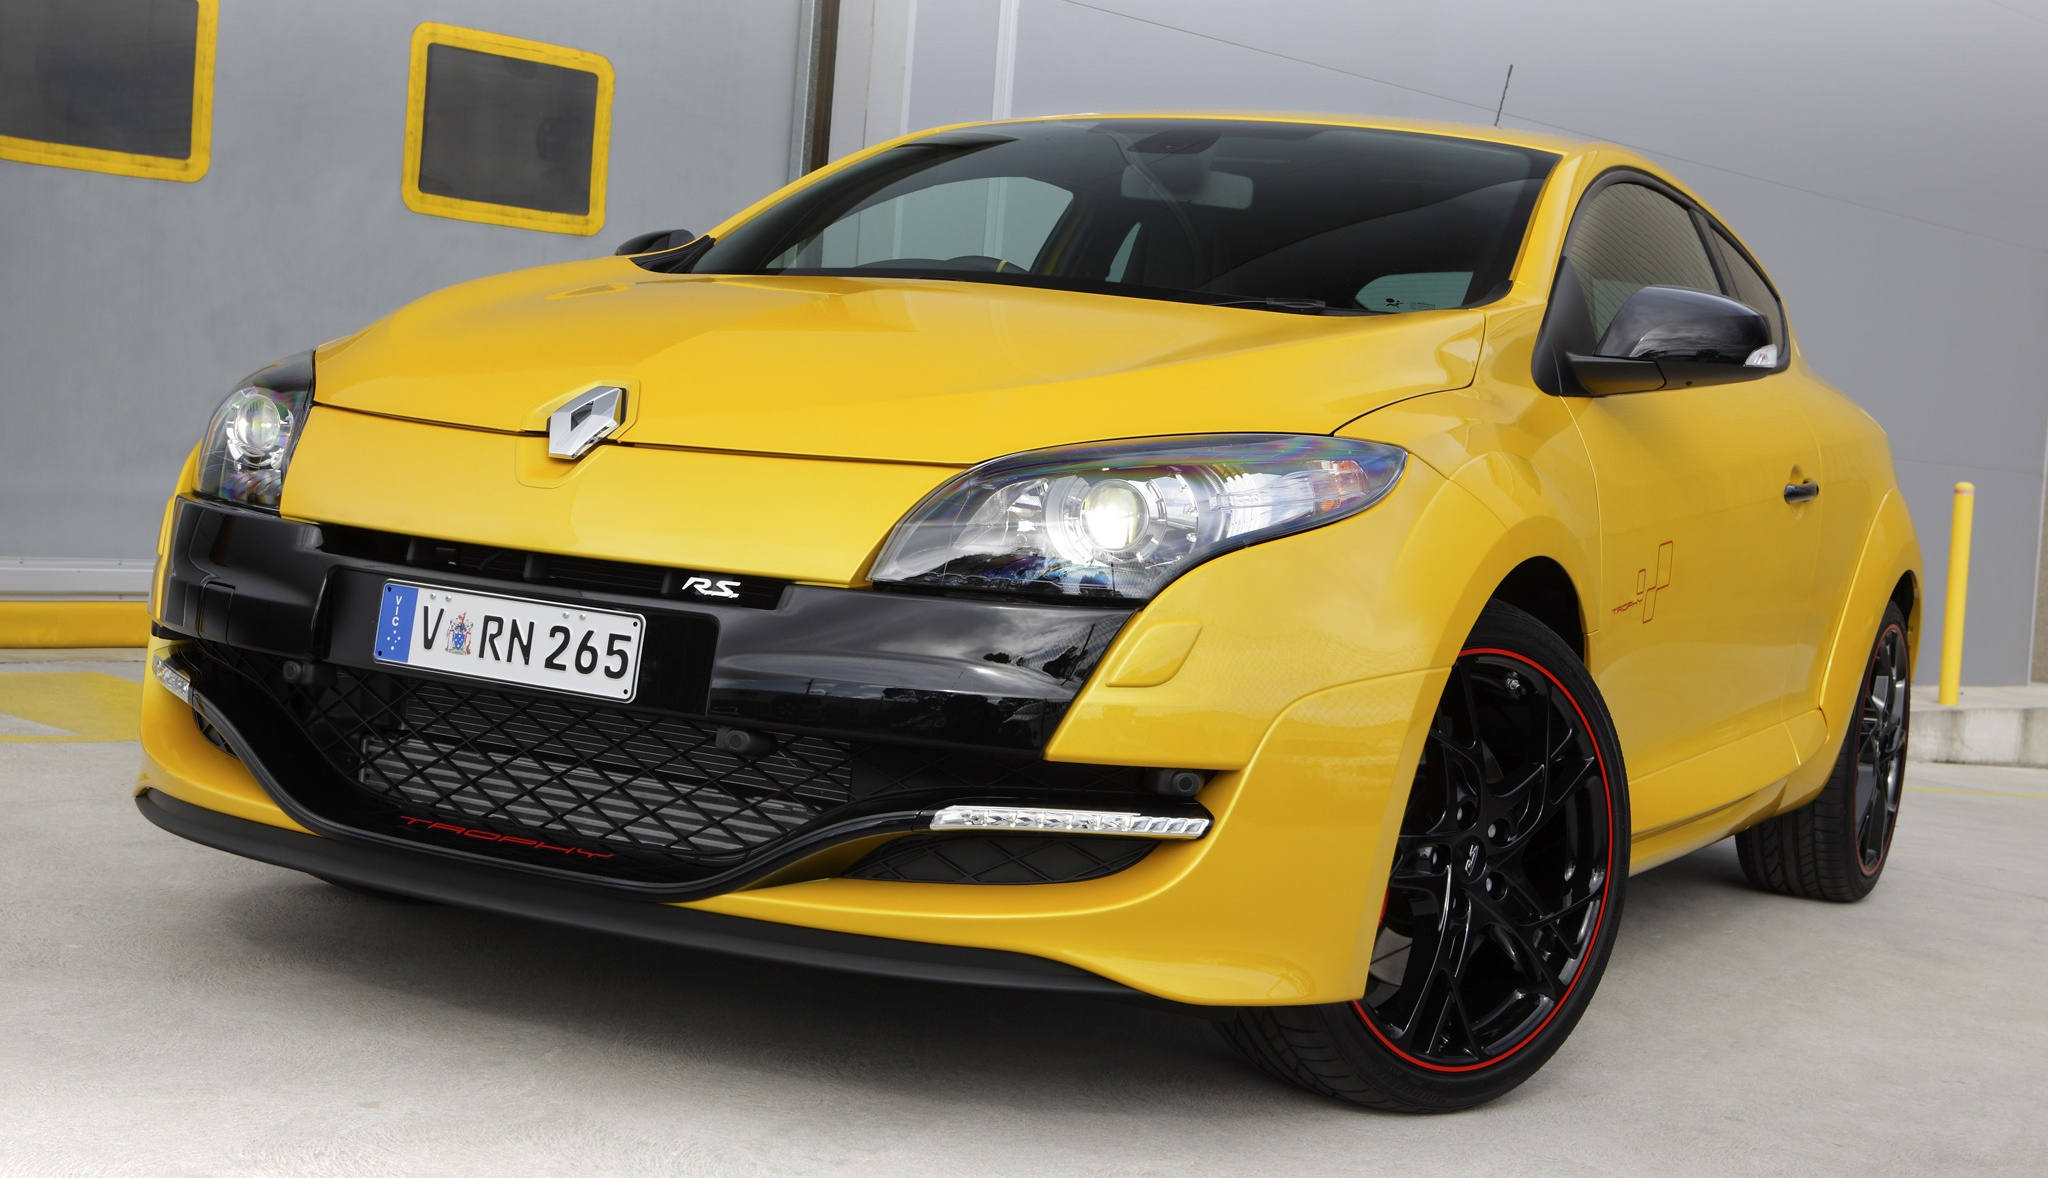 renault megane rs 265 trophy introduced rm244k. Black Bedroom Furniture Sets. Home Design Ideas